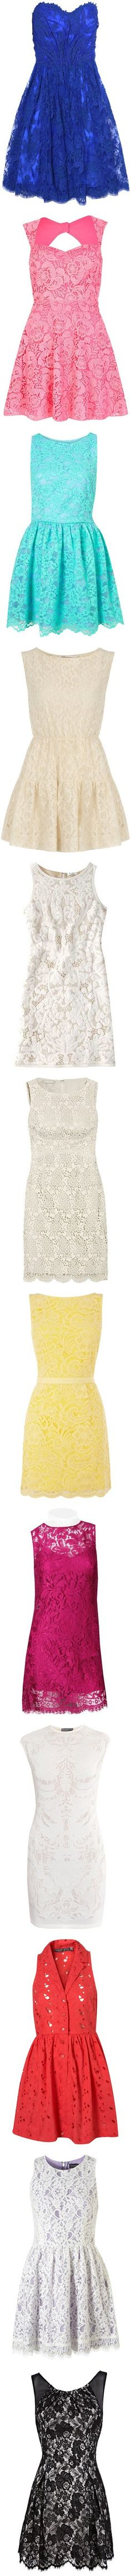 I am obsesssed with lace. I wish everything in my life was lace.